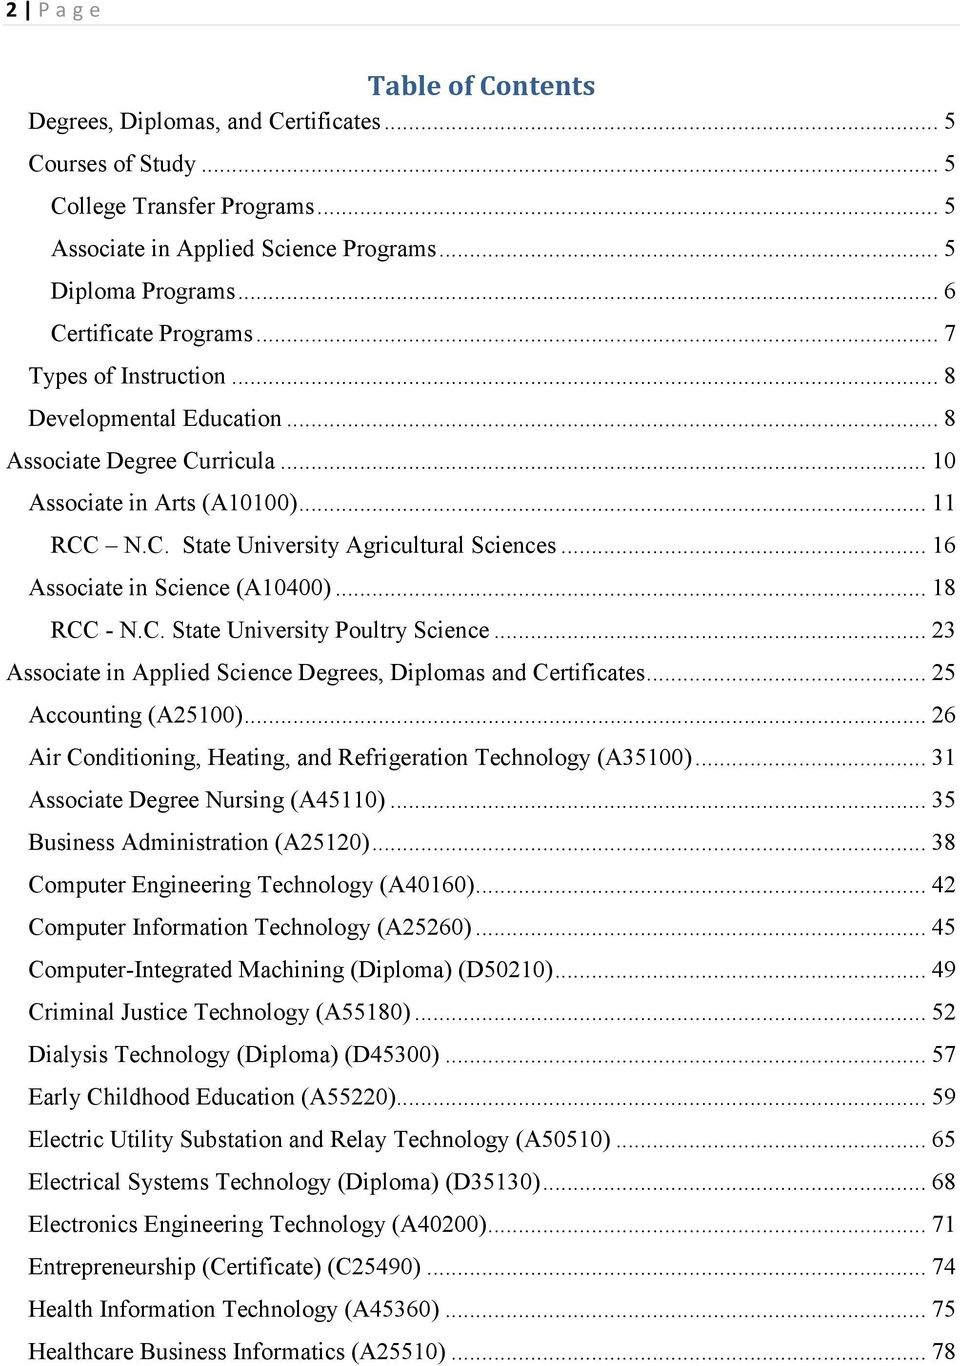 .. 16 Associate in Science (A10400)... 18 RCC - N.C. State University Poultry Science... 23 Associate in Applied Science Degrees, Diplomas and Certificates... 25 Accounting (A25100).